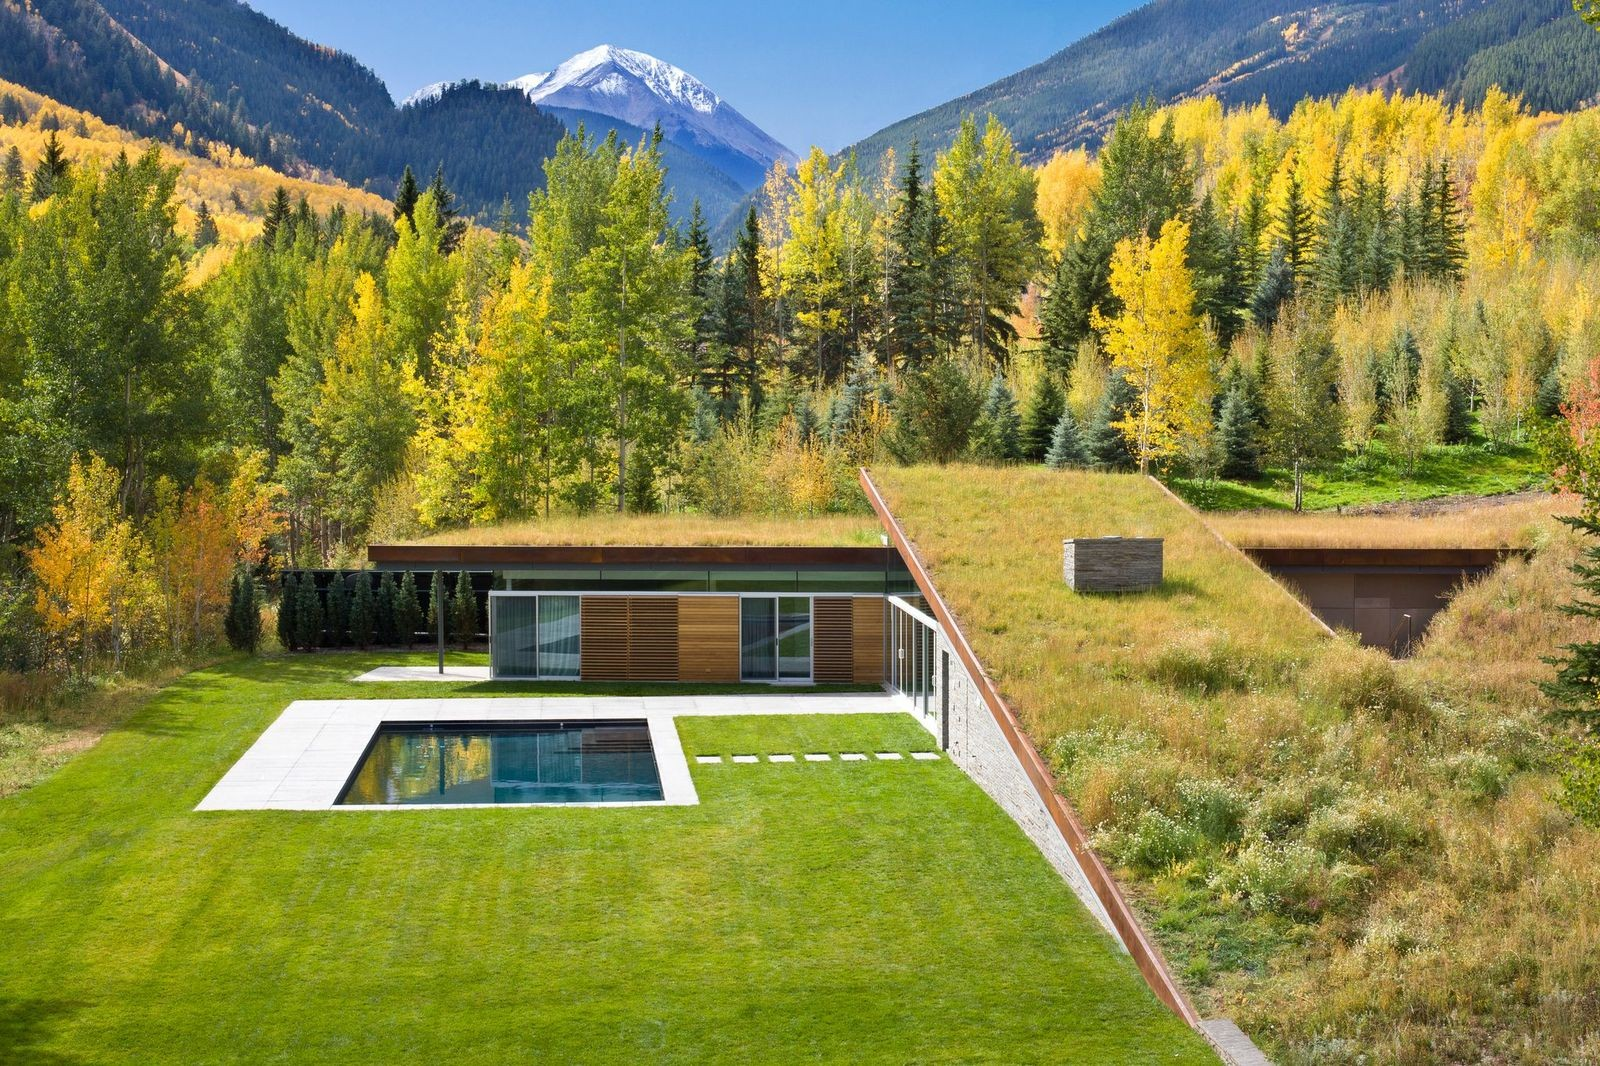 2013 AIA Housing Awards Announced , House in the Mountains; Colorado / GLUCK+ © Steve Mundinger